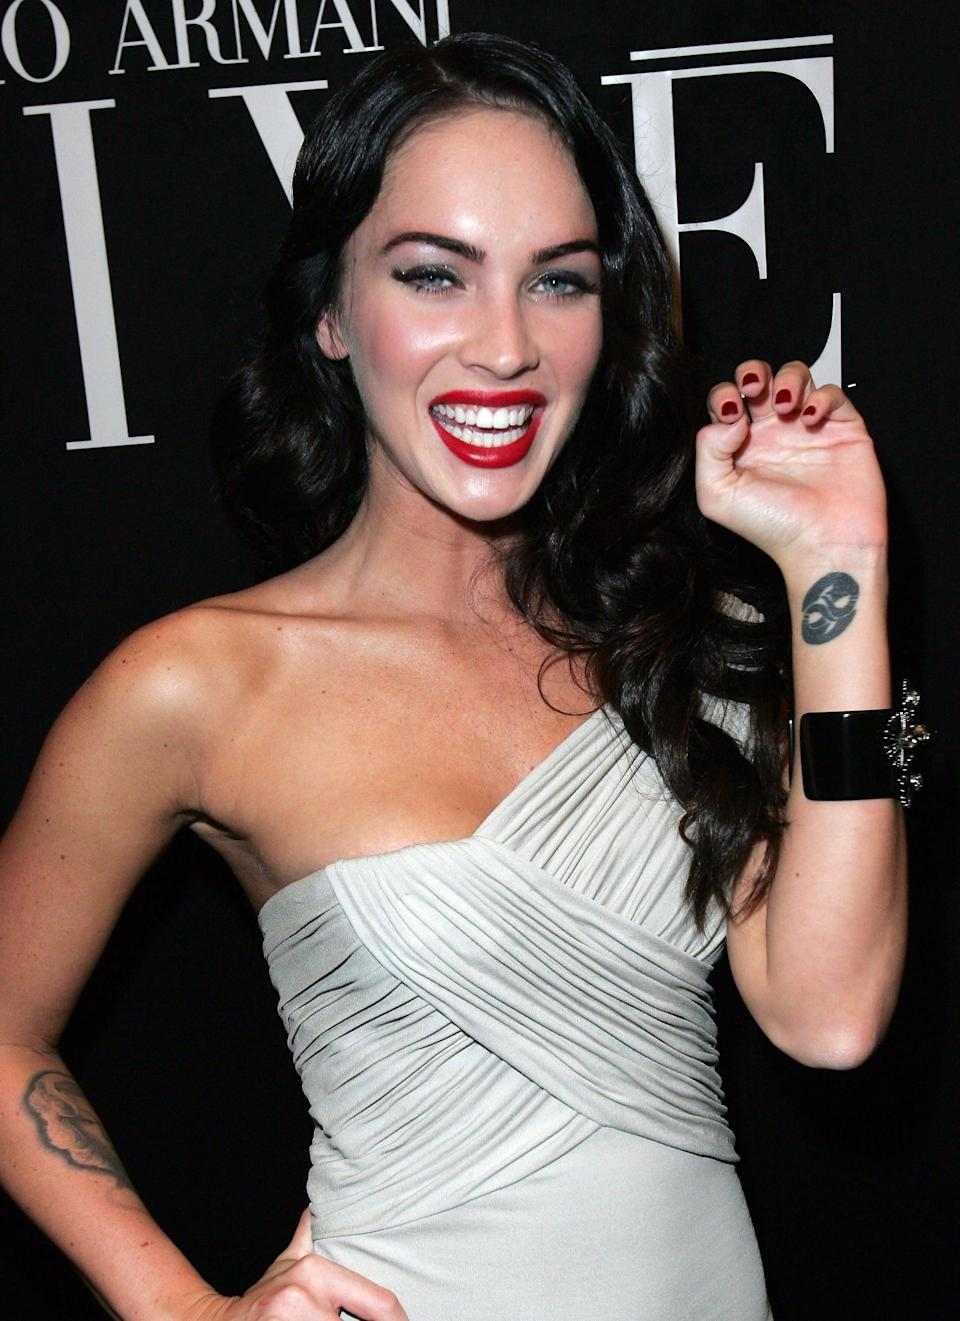 <p>On the inside of Fox's left wrist is a thick black tattoo of waves that form a yin-yang symbol. It's unknown exactly when she got it, but she's had it for more than a decade.</p>